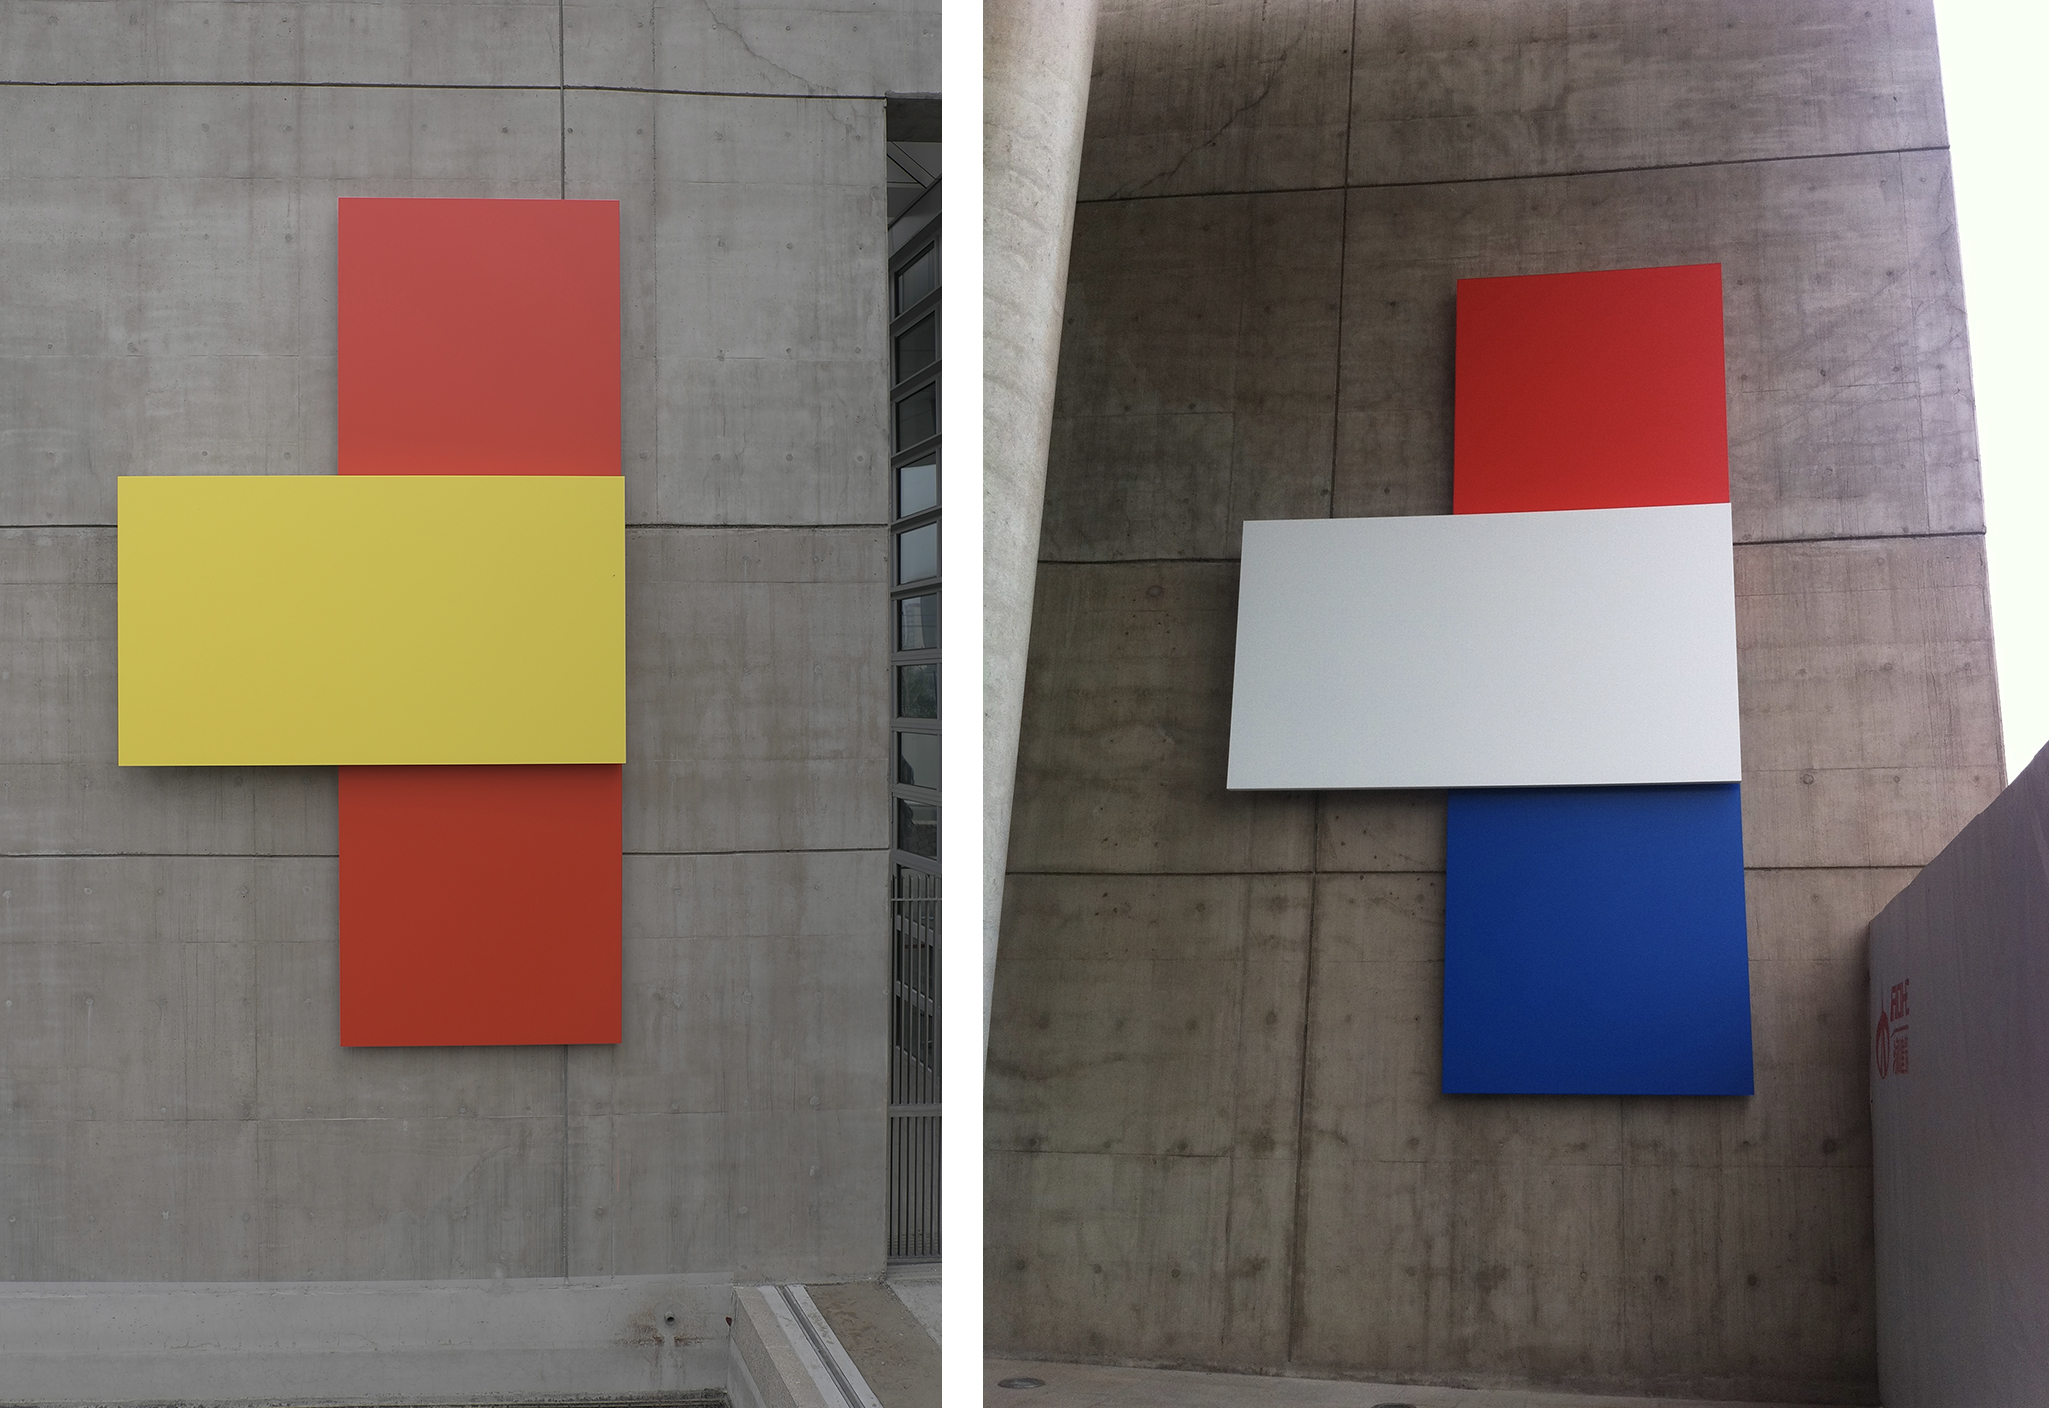 Ellsworth Kelly  Untitled 2004 (EK920) Painted aluminum, two reliefs  American Embassy - Beijing, China  Each panel 225 x 132 x 11.15 inches      View More Ellsworth Kelly